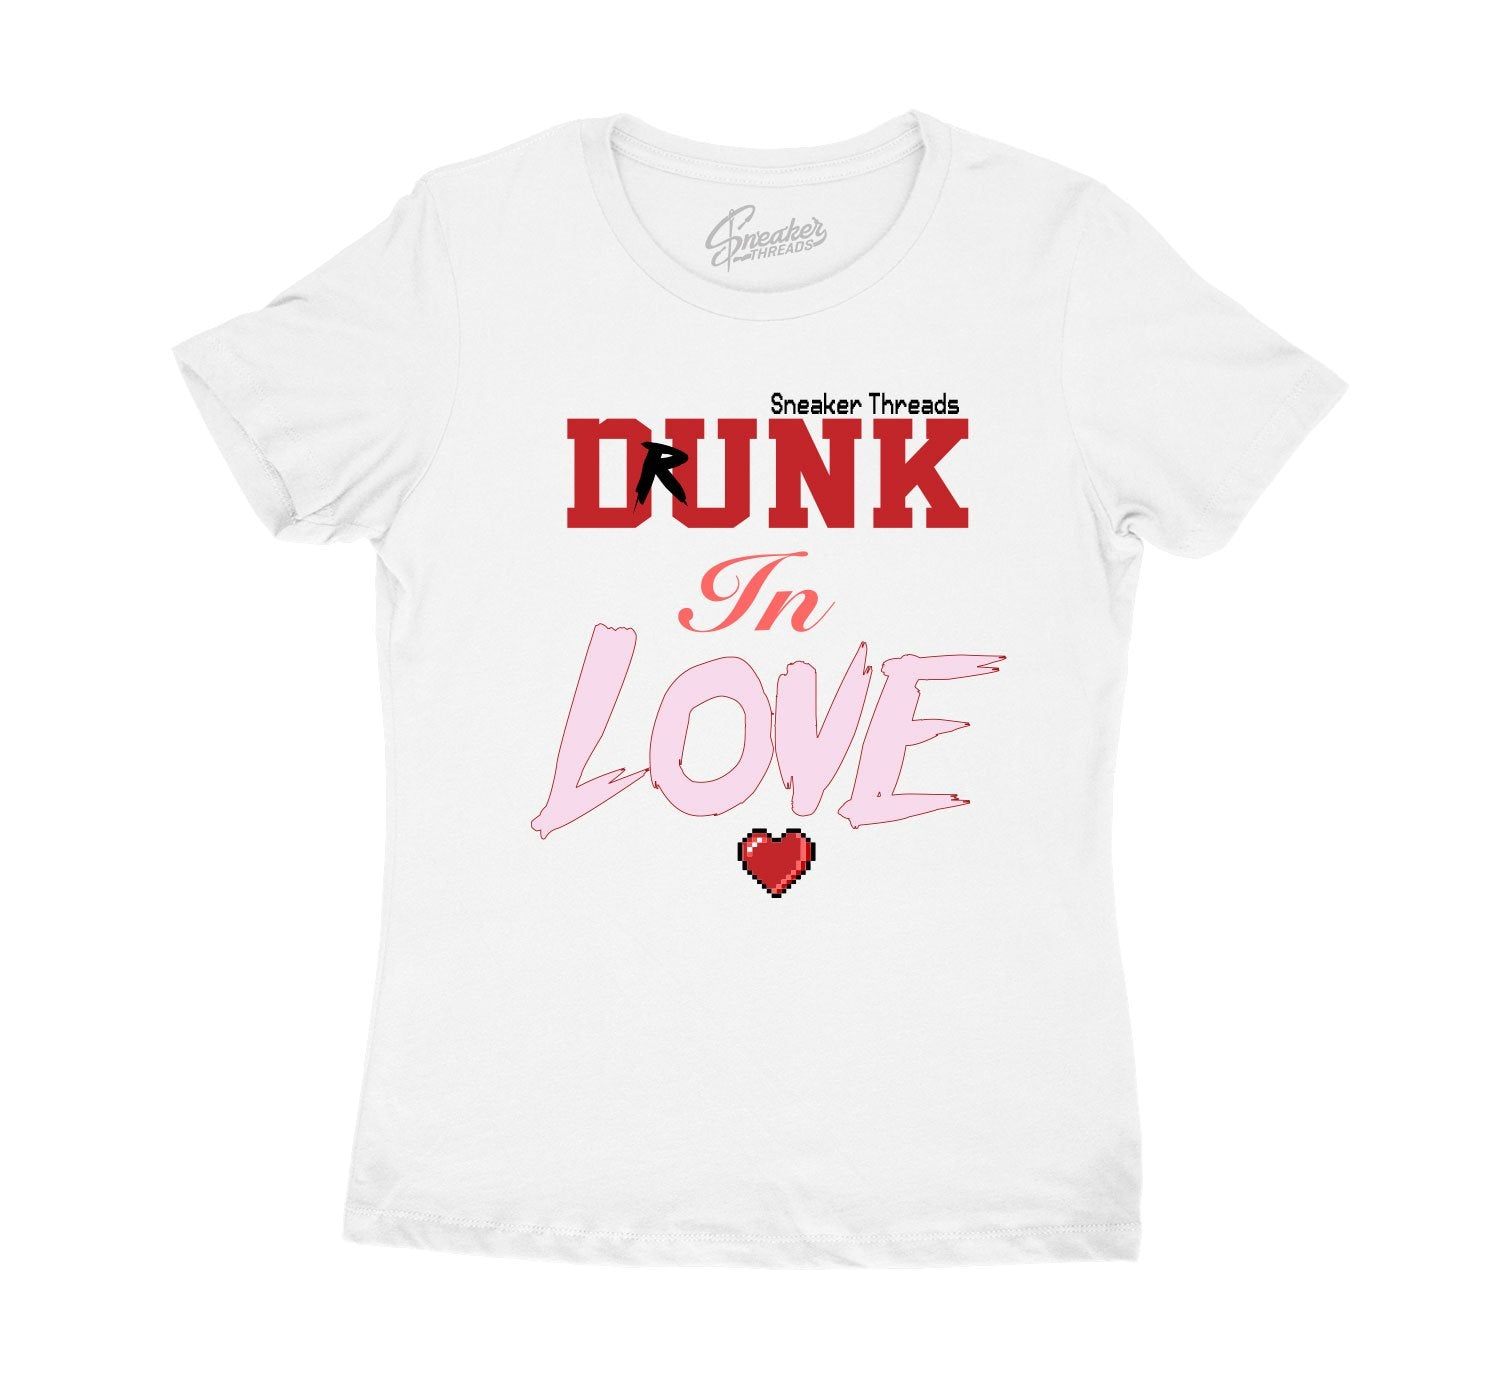 t shirt for women designed to match the nike sb dunk sneaker Strangelove